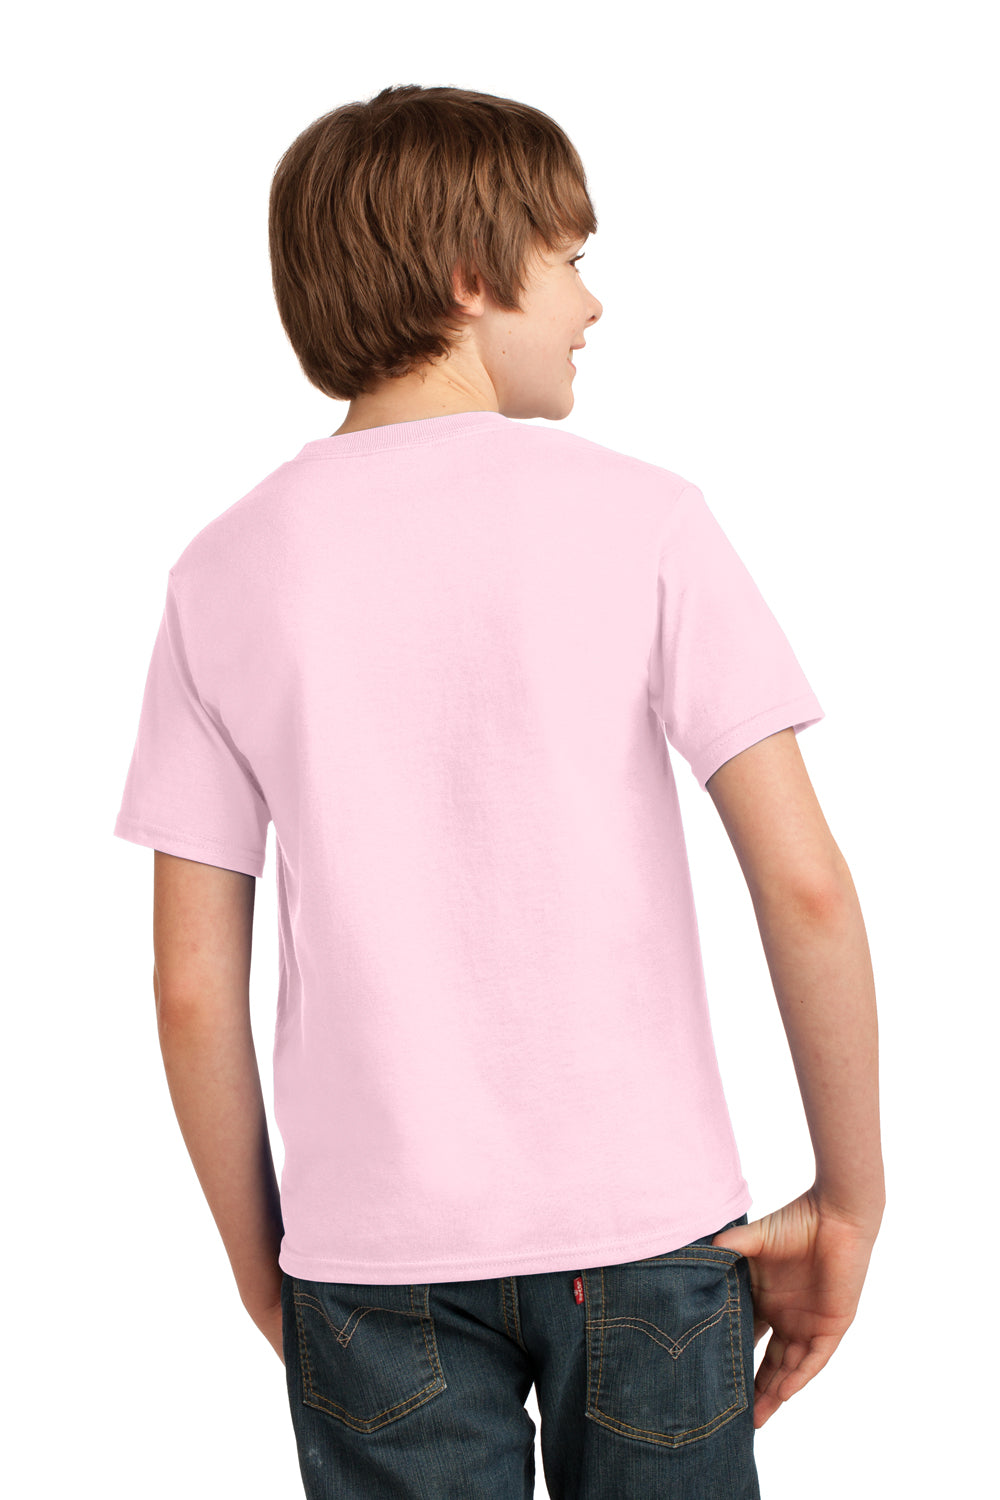 Port & Company PC61Y Youth Essential Short Sleeve Crewneck T-Shirt Pale Pink Back